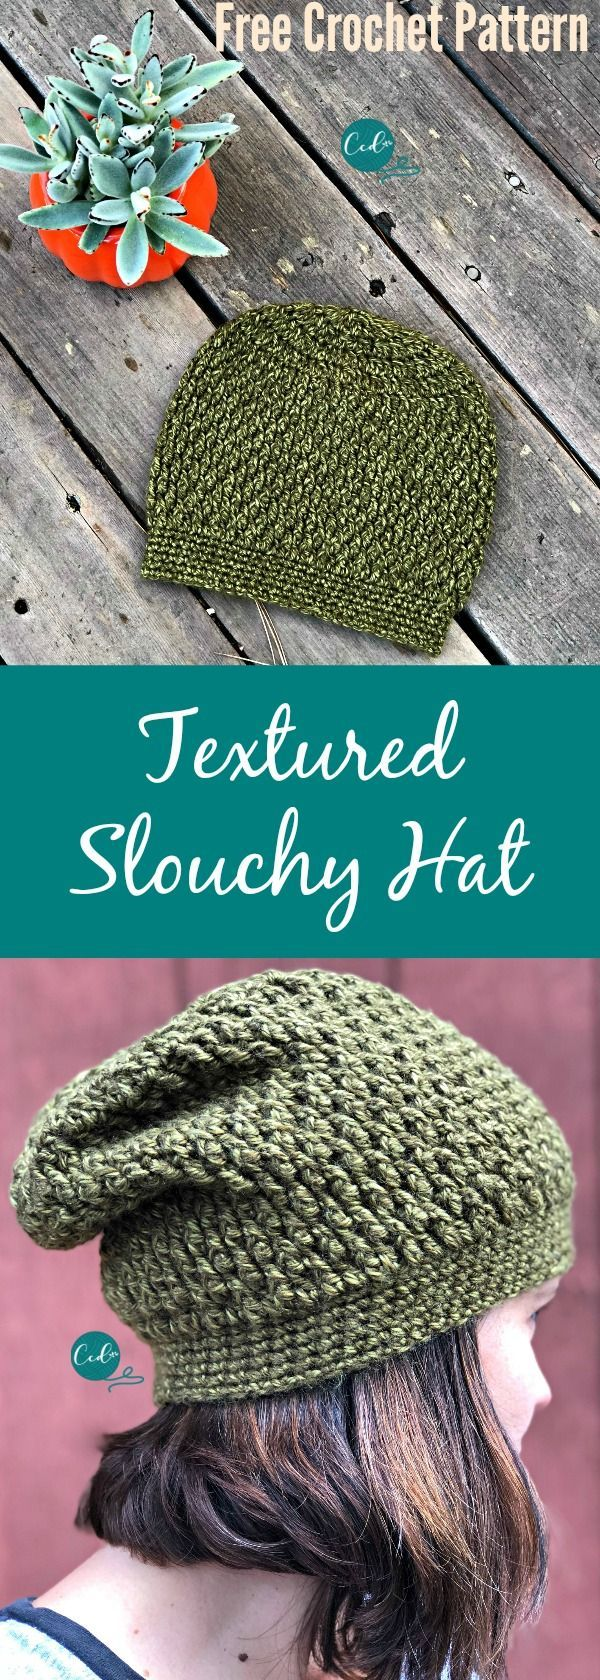 Free Pattern for a textured slouchy hat.